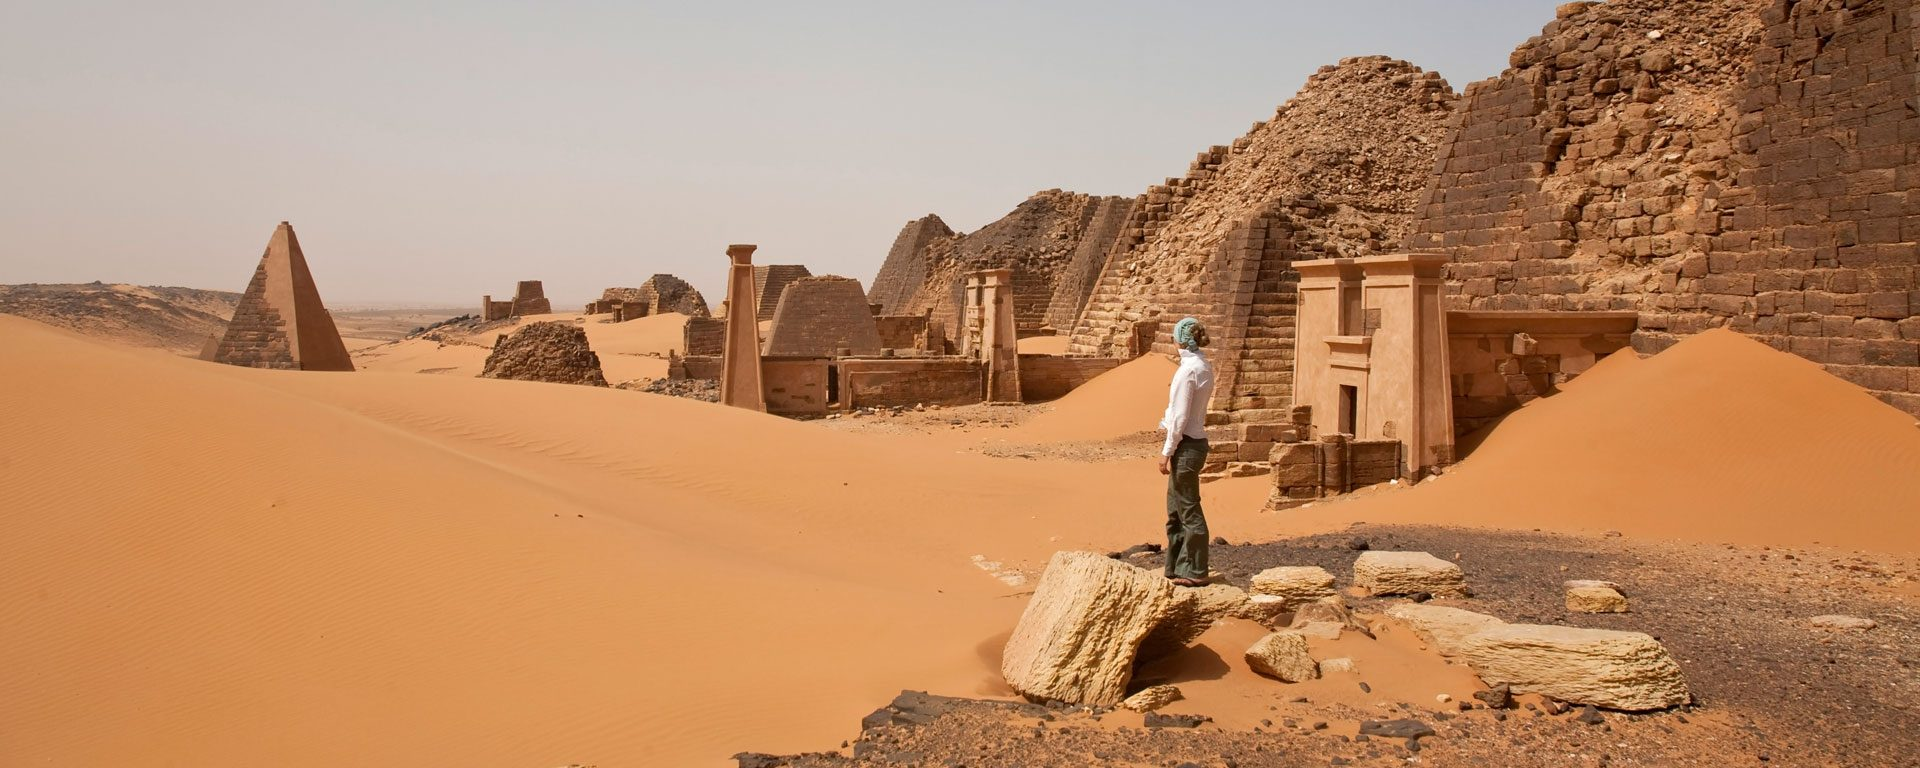 Woman explores ancient Nubian pyramids in Begrawiya, Sudan